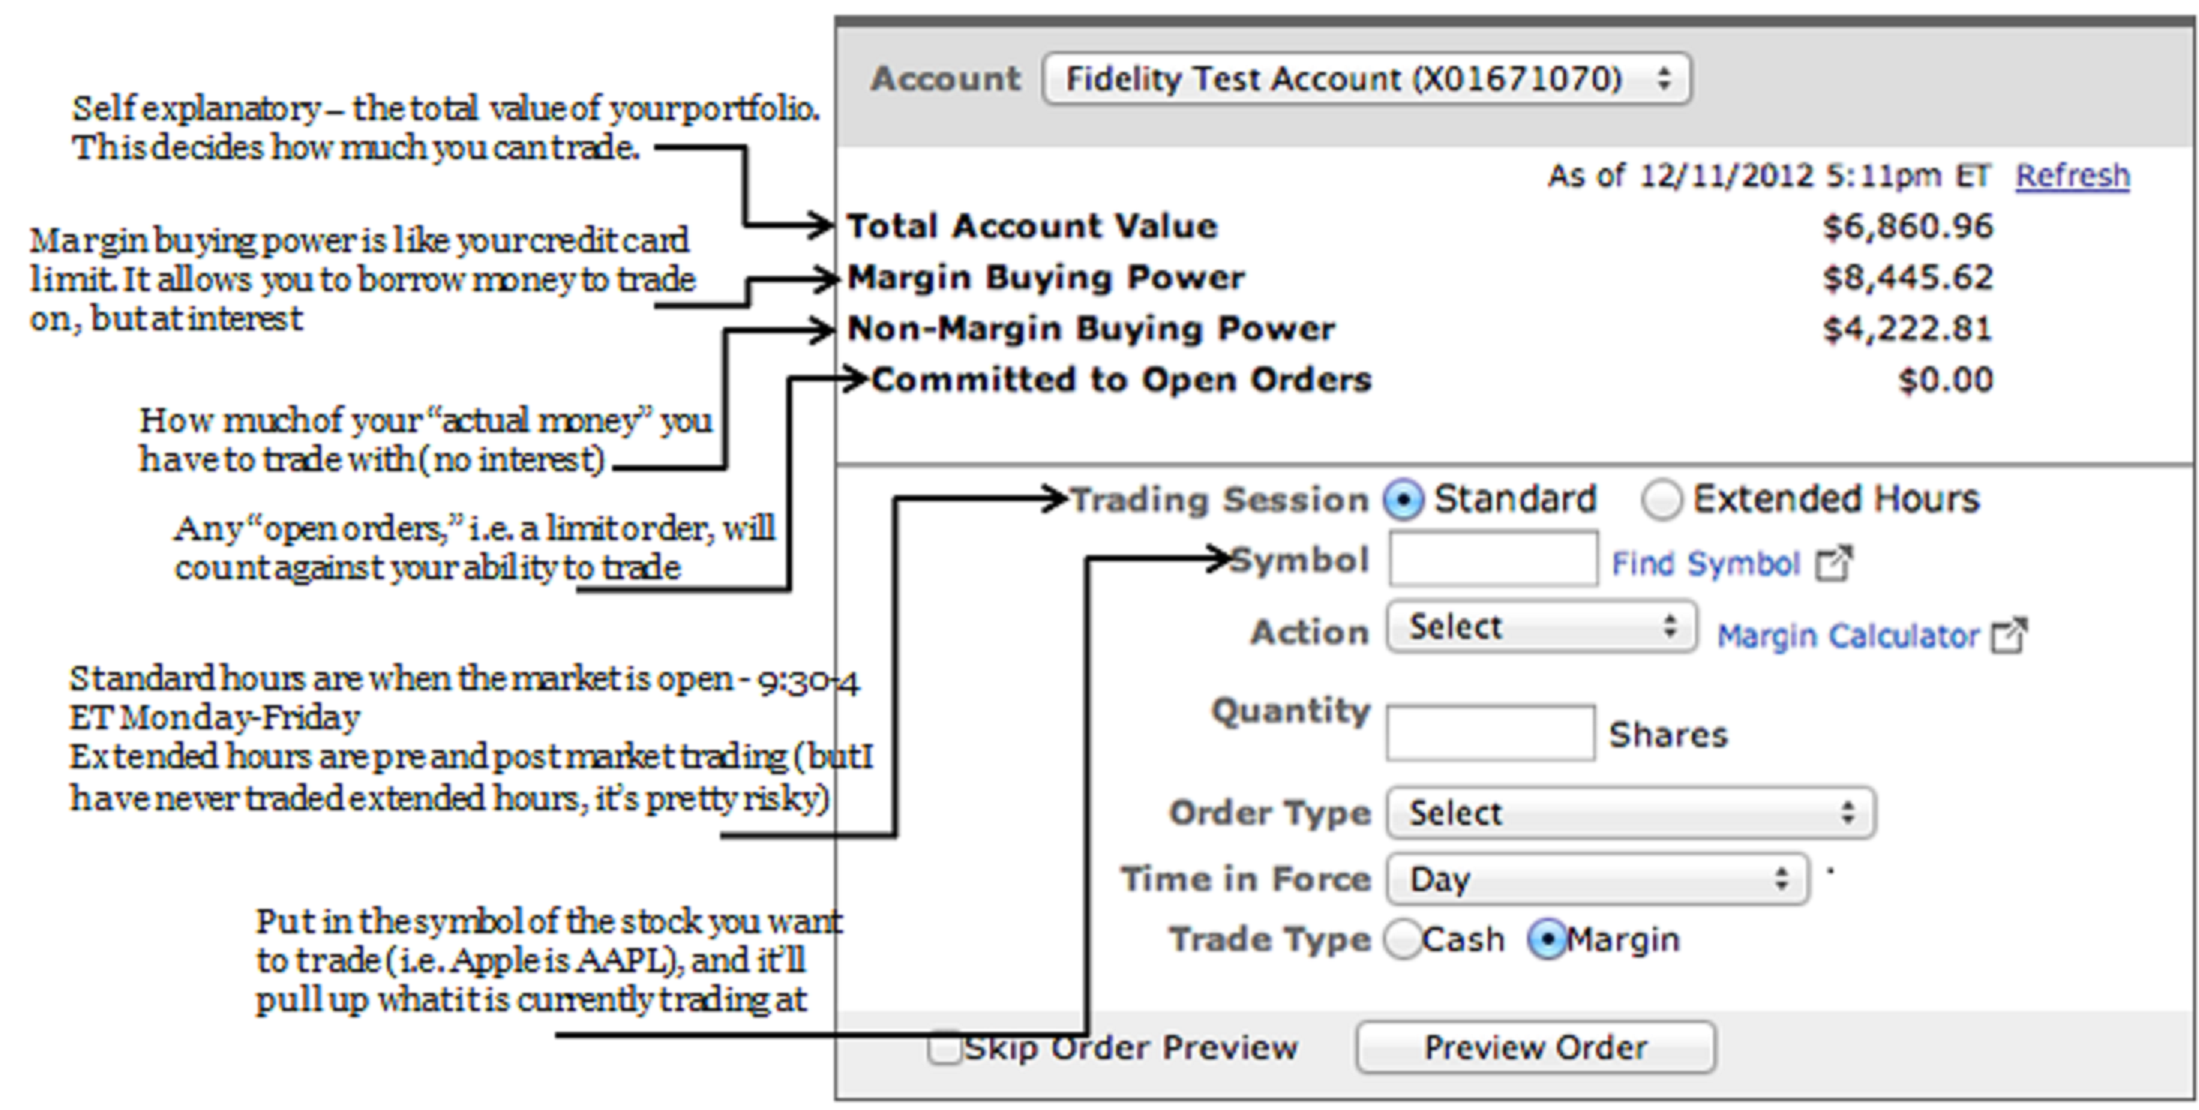 Fidelity 401k options trading